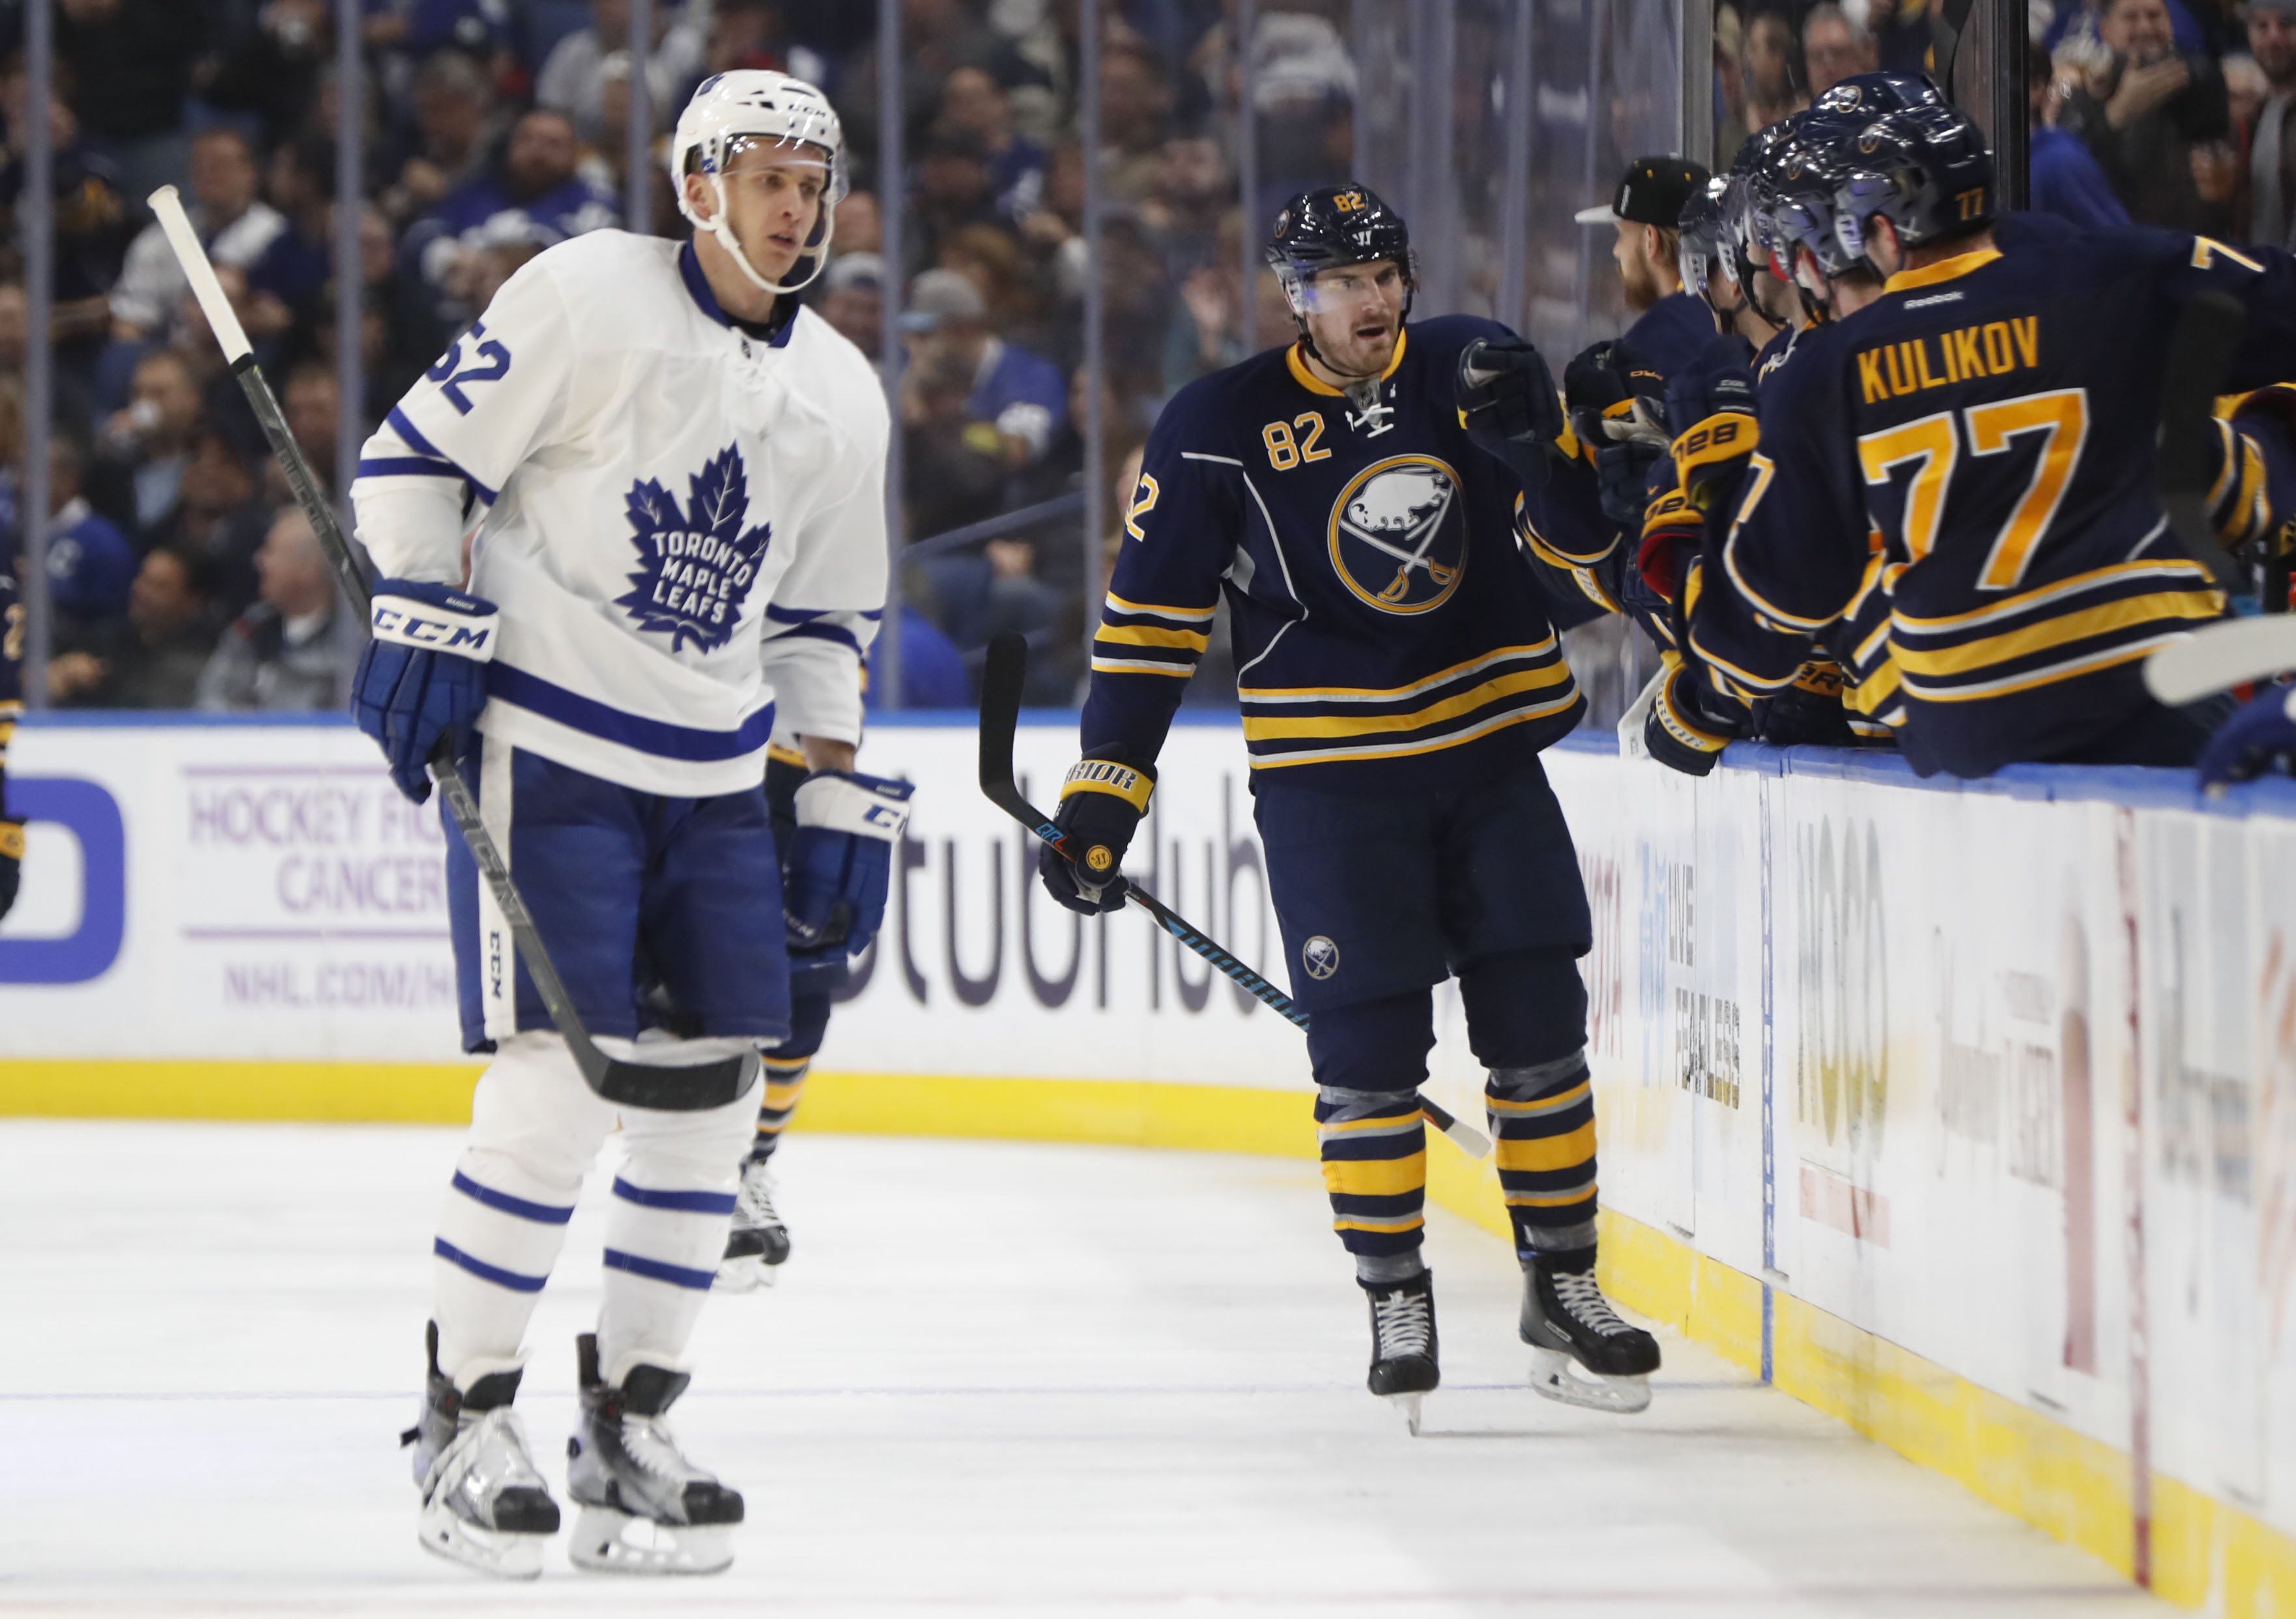 Marcus Foligno scored the only goal of the game for the Sabres. (Harry Scull Jr./Buffalo News)